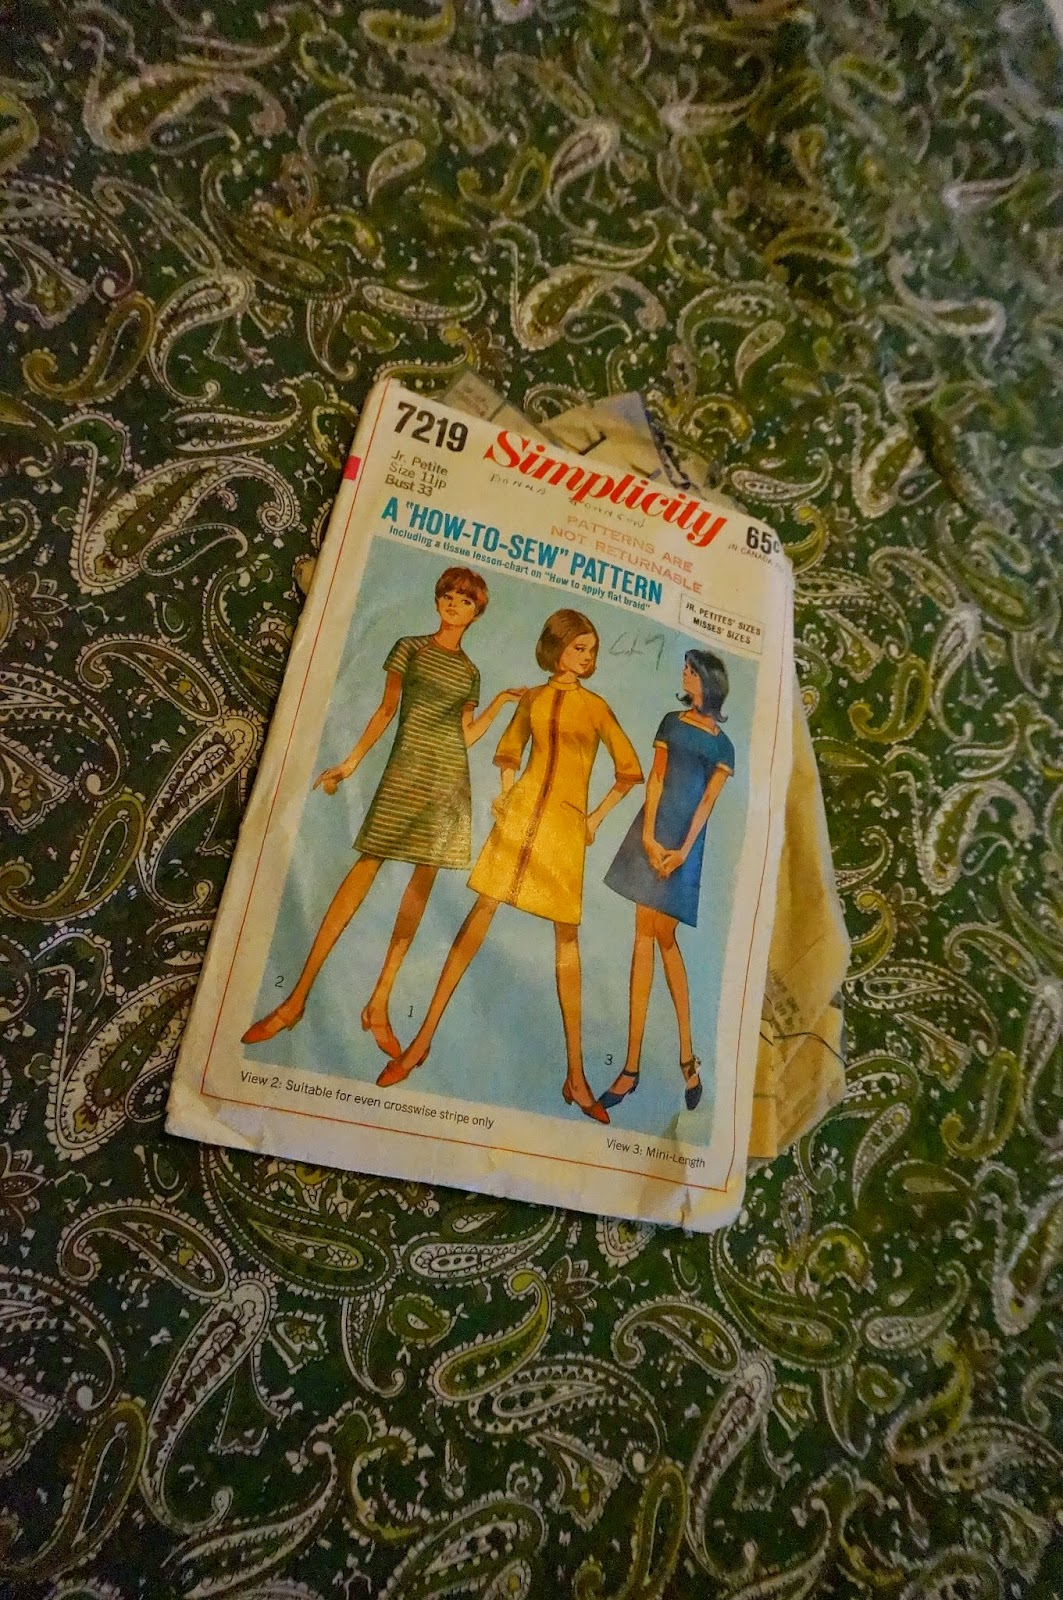 Addicted to my sewing machine : A-line dress with raglan sleeves , based on 1967 Simplicity pattern ( n° 7219)  I choose the view 2 , with 3/4 sleeves and without welts and novelty braid trim  . I add a white collar / tie on the green and yellow paisley fabric .vintage 1960 60s 60's années 60 retro mod dress robe twiggy gogo cachemire vert jaune col blanc